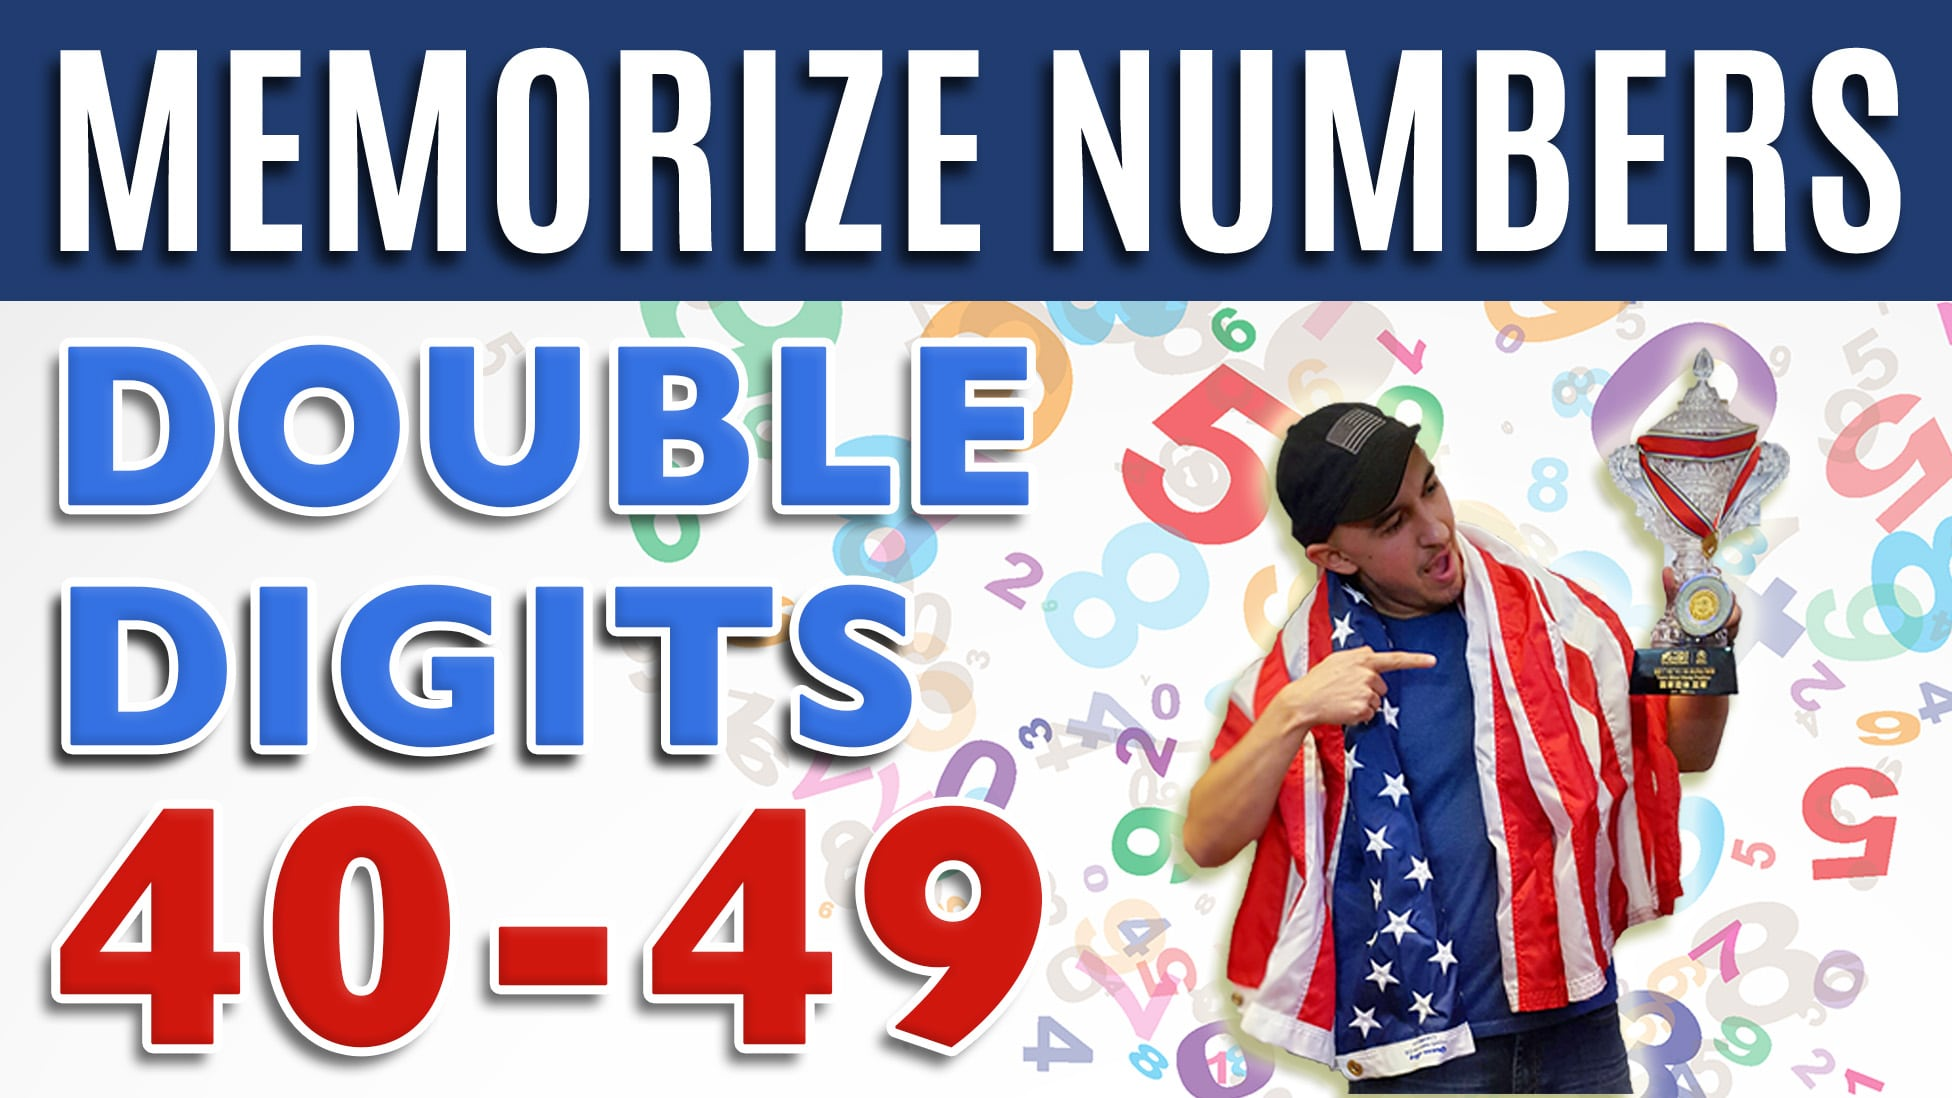 how to memorize numbers 40-49